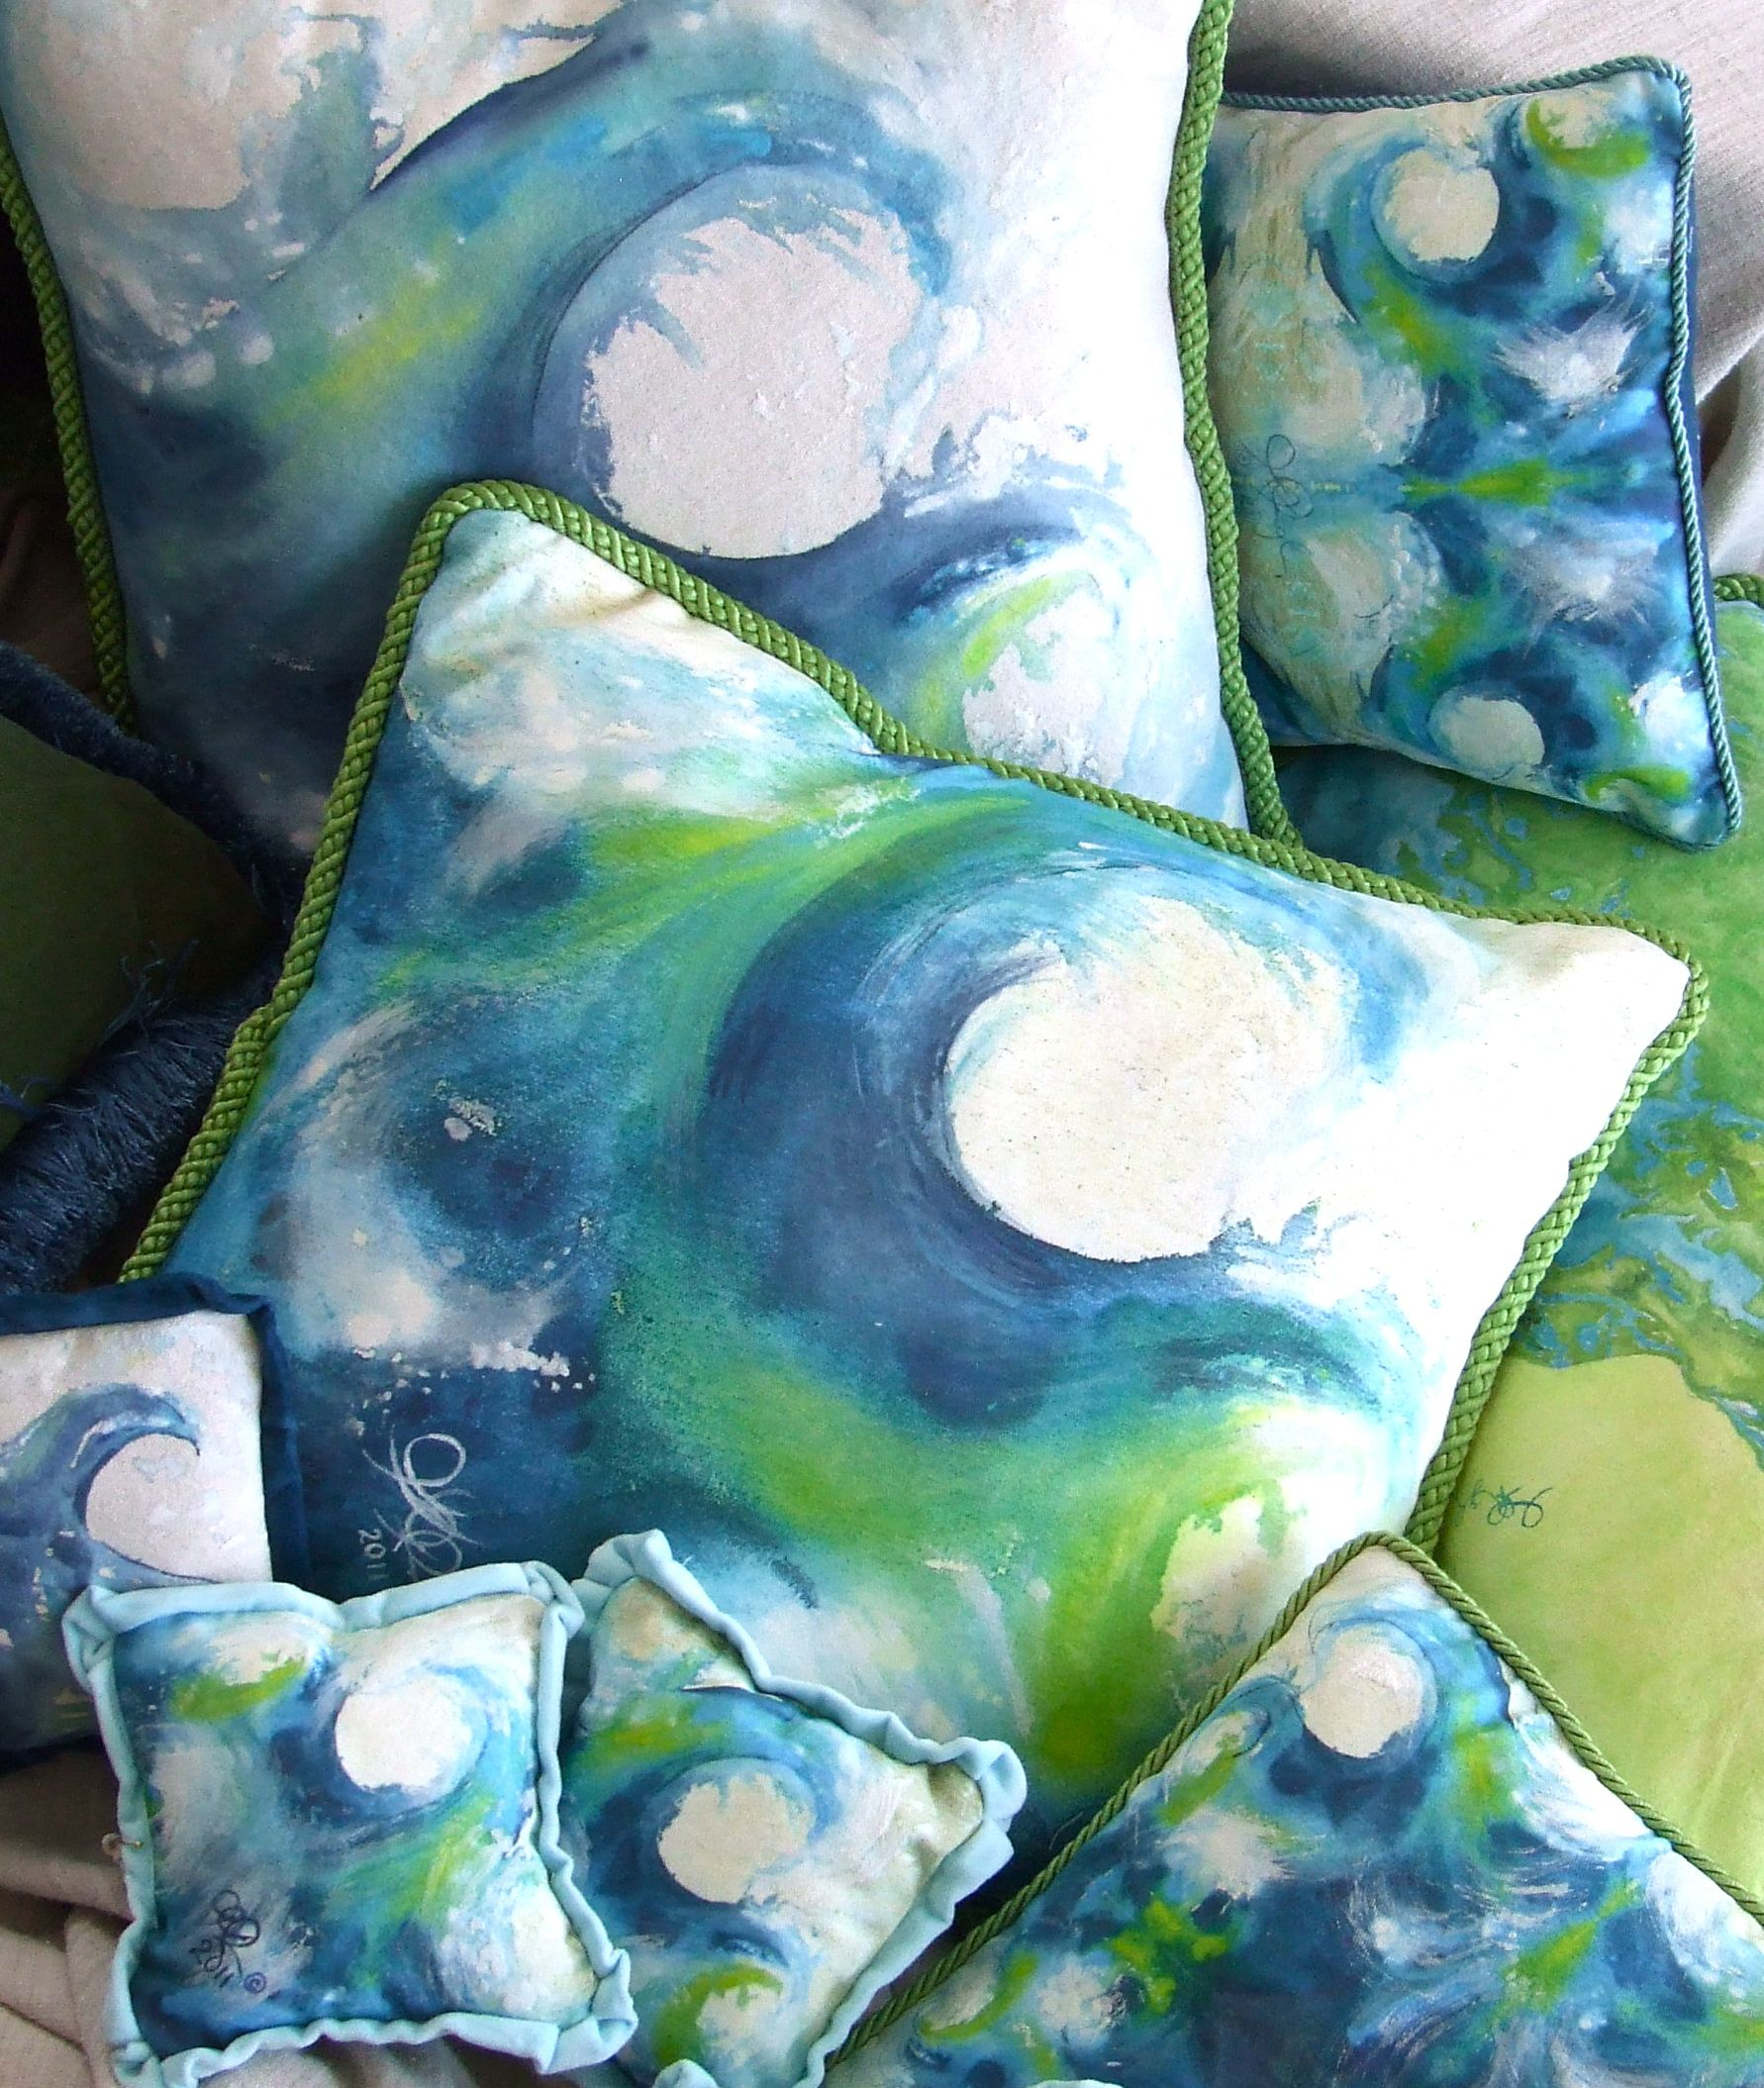 Making Waves at www.cedianpainting.com. One of my favorite pillow prints. | Artistic Innovation ...